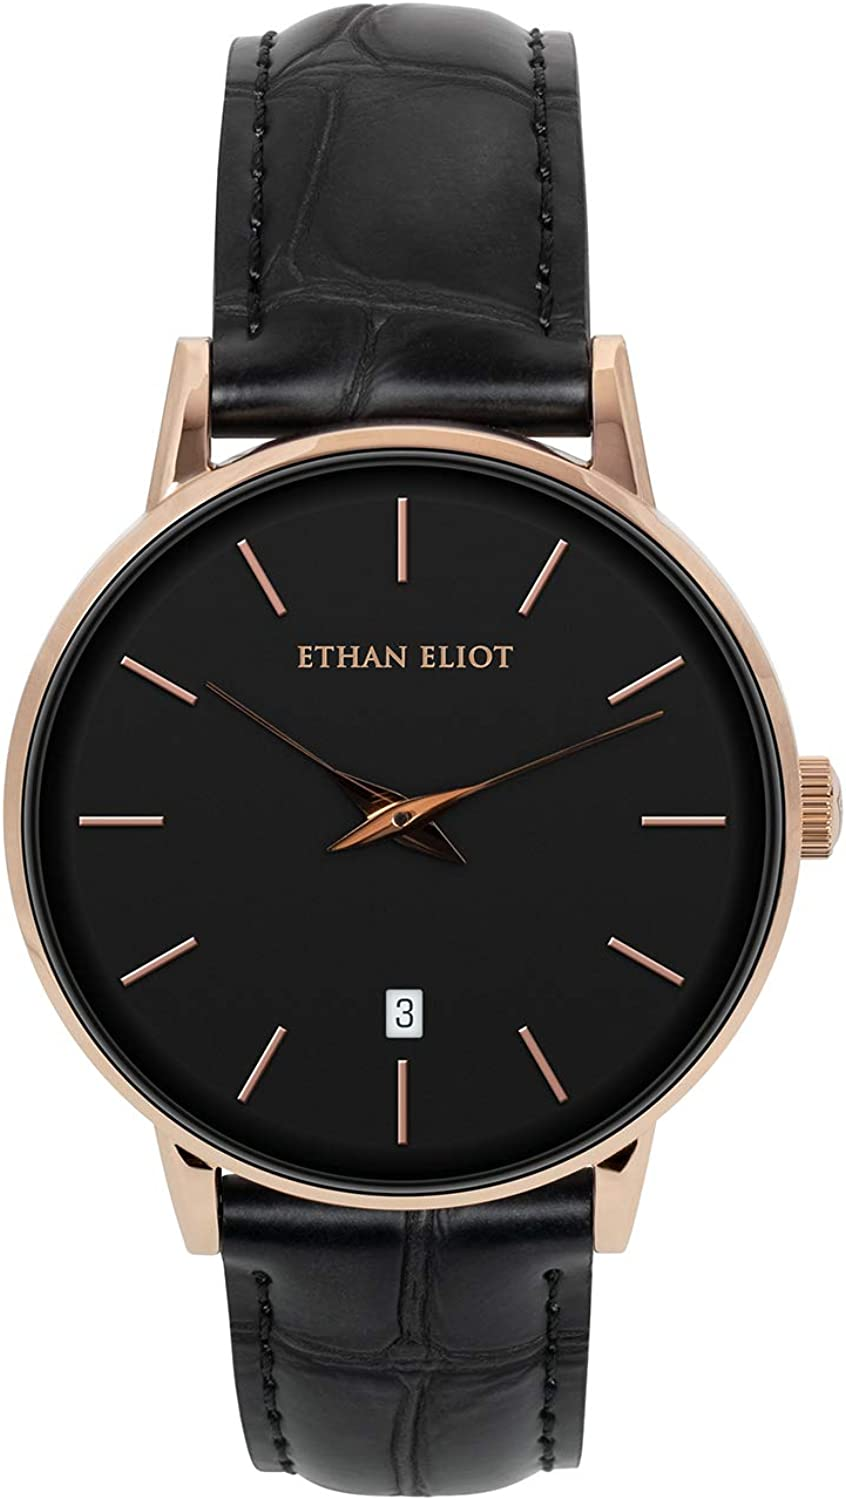 Ethan Eliot Classic Men s Watch, Women s Watch, Melrose 38mm Rose Gold Watch for Men Watch for Women Unisex , Stainless Steel Rose Gold Case, Black Dial Croc-Embossed Black Leather EE38-RB22CBK